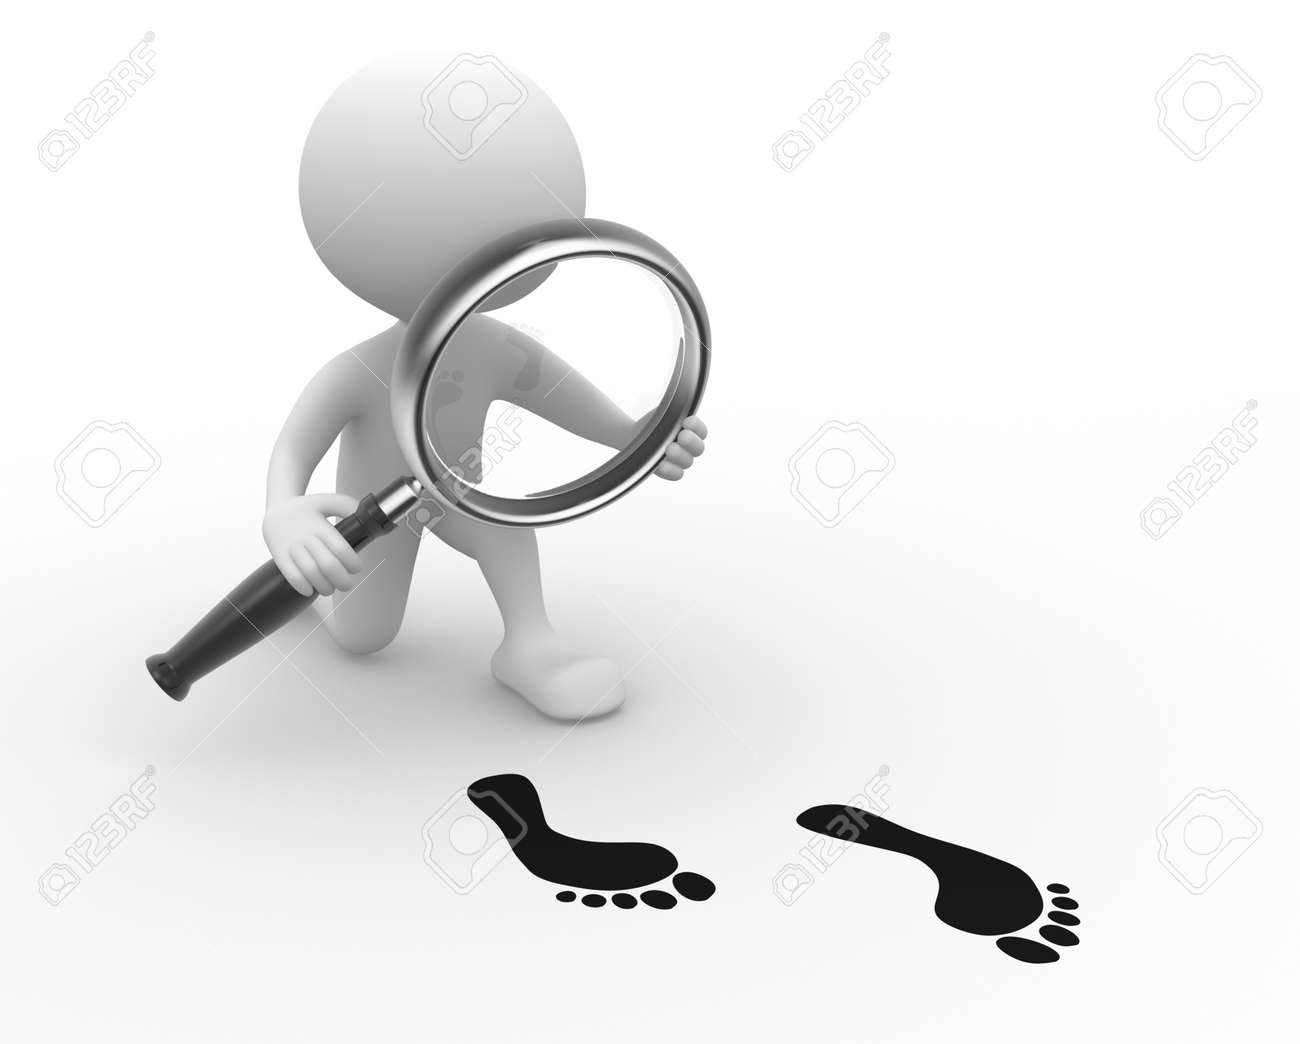 3d people - man, person with a magnifying glass and footprint Stock Photo - 21358970